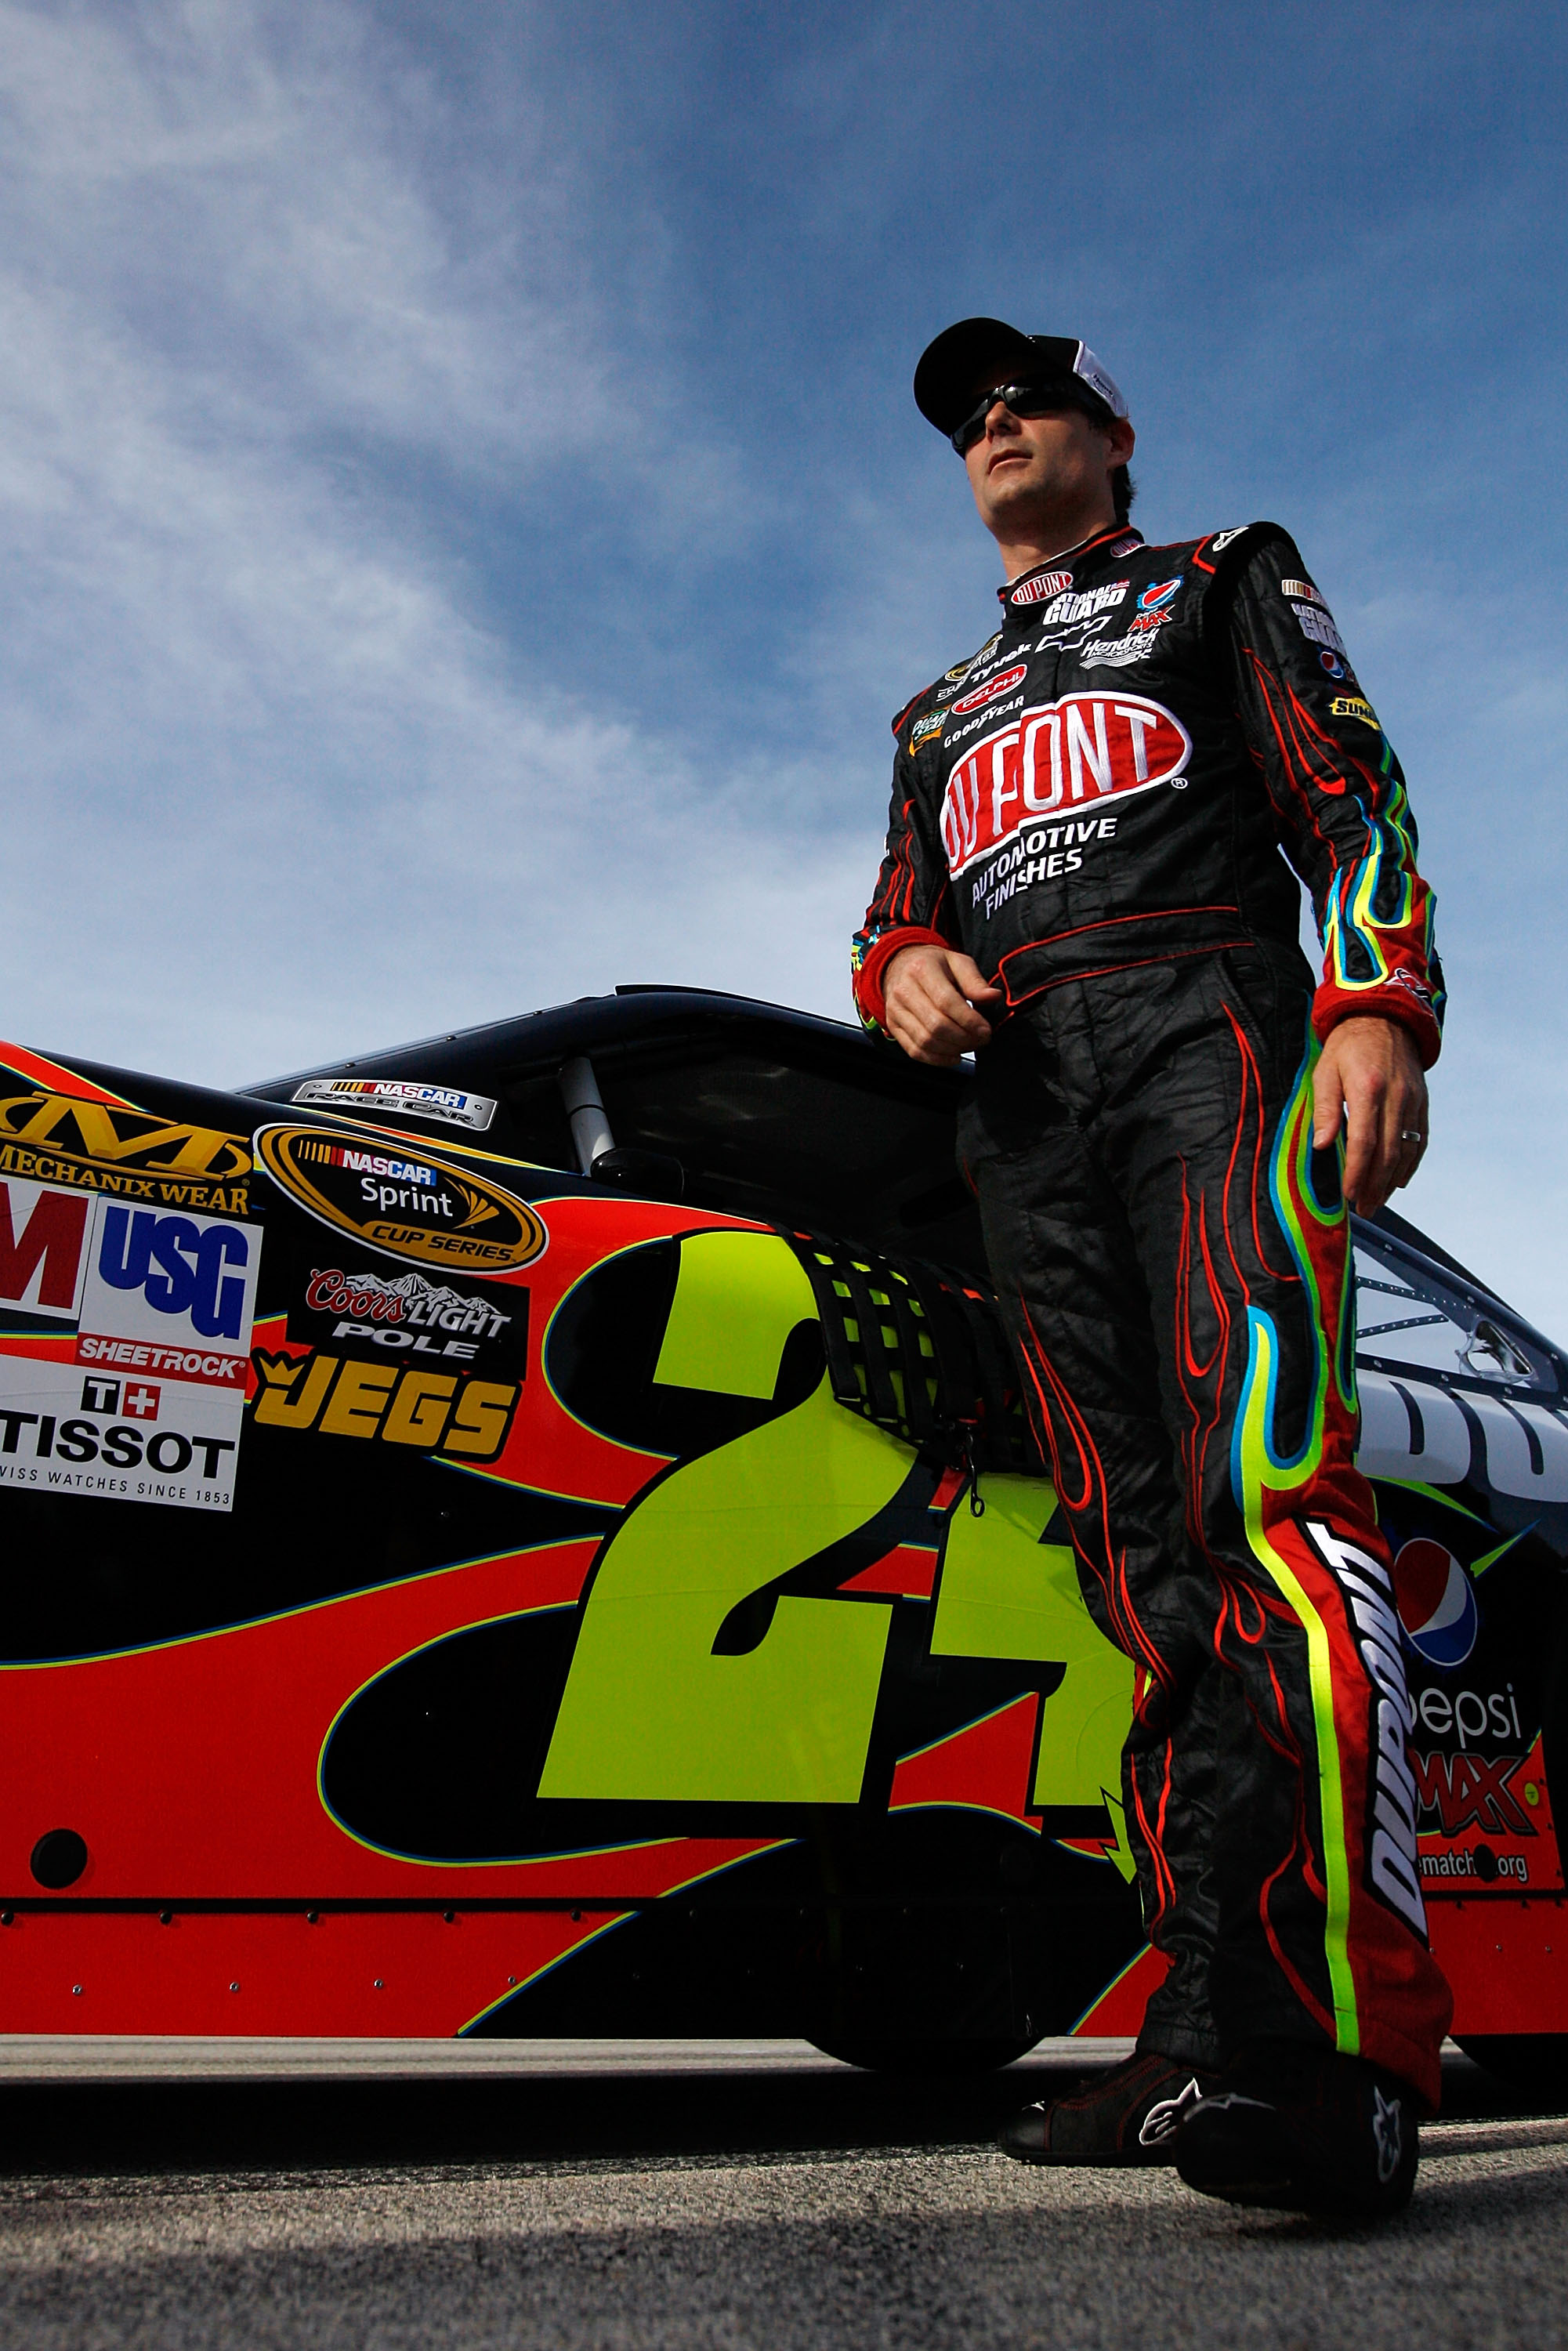 HOMESTEAD, FL - NOVEMBER 19:  Jeff Gordon, driver of the #24 DuPont Chevrolet, stands by his car after qualifying for the NASCAR Sprint Cup Series Ford 400 at Homestead-Miami Speedway on November 19, 2010 in Homestead, Florida.  (Photo by Chris Graythen/G